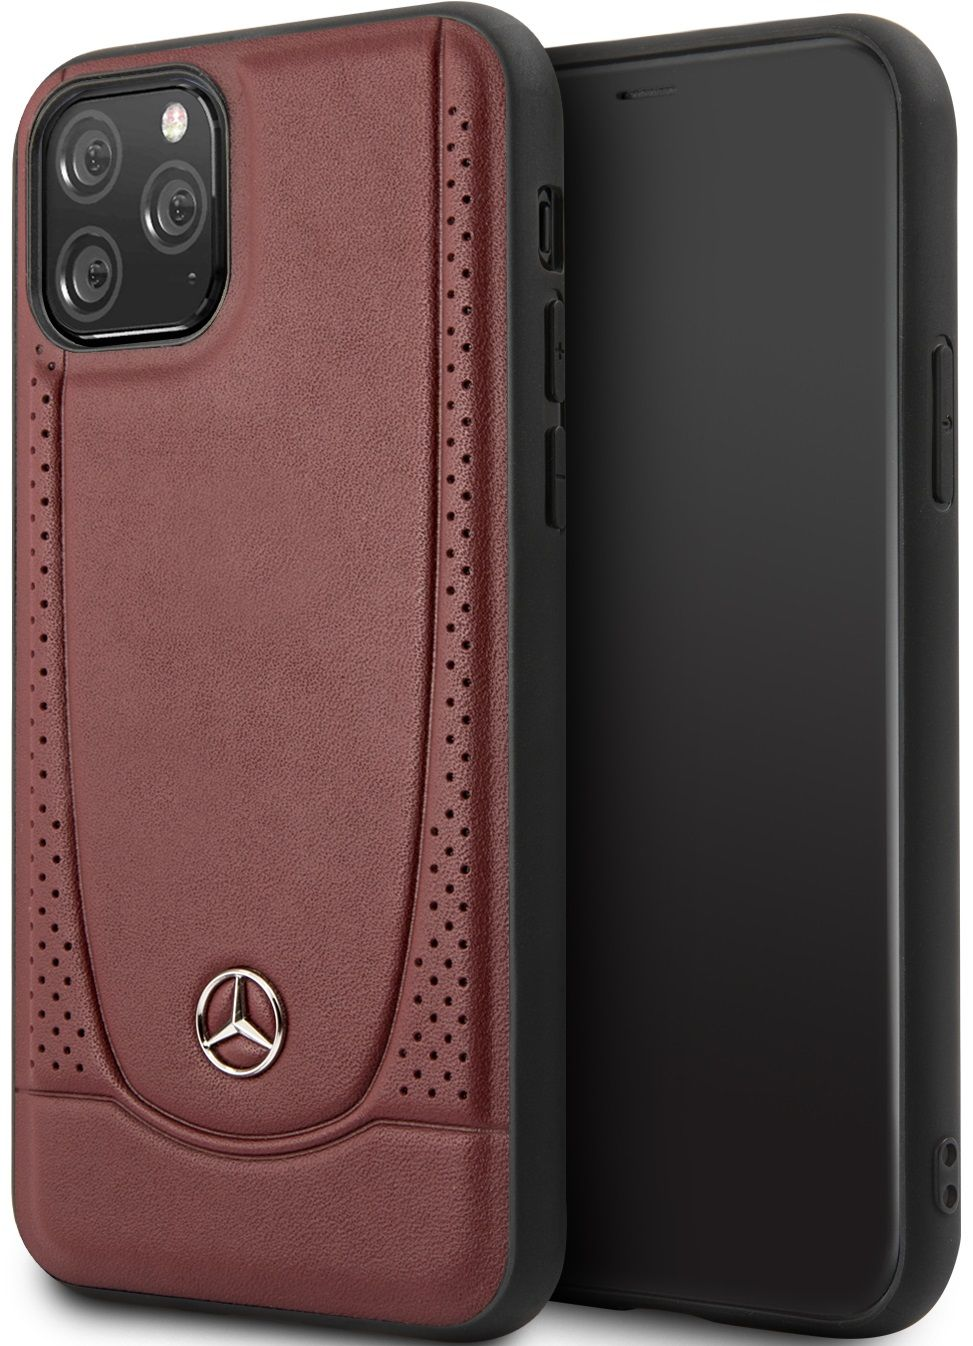 Чехол Mercedes для iPhone 11 Pro Urban Smooth/perforated Hard Leather Red